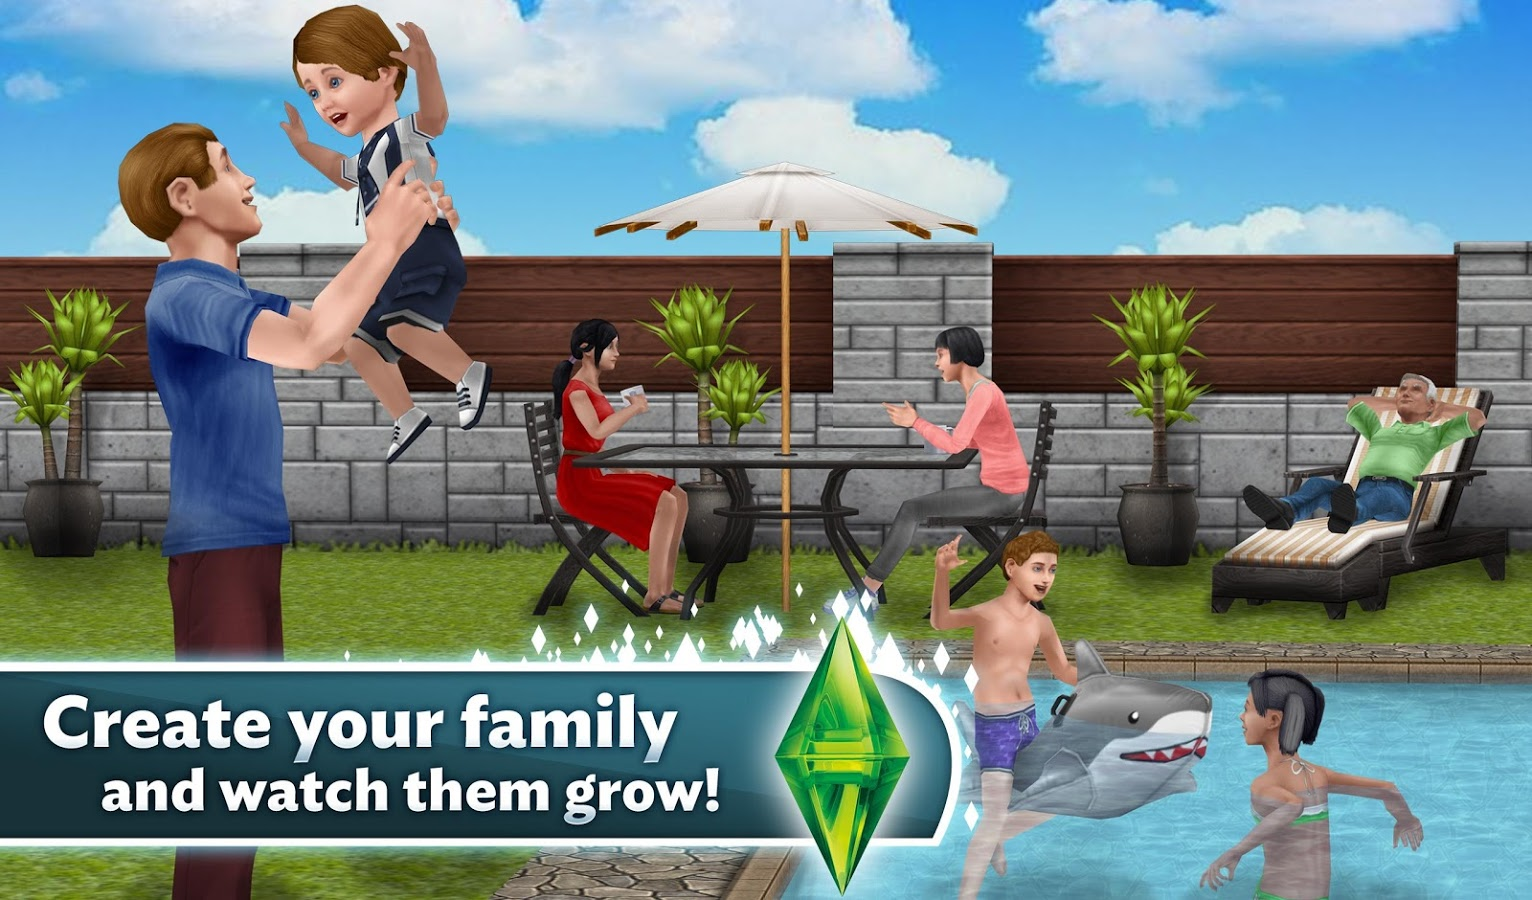 Sims FreePlay 5.21.0 MOD APK+DATA (UNLIMITED MONEY)